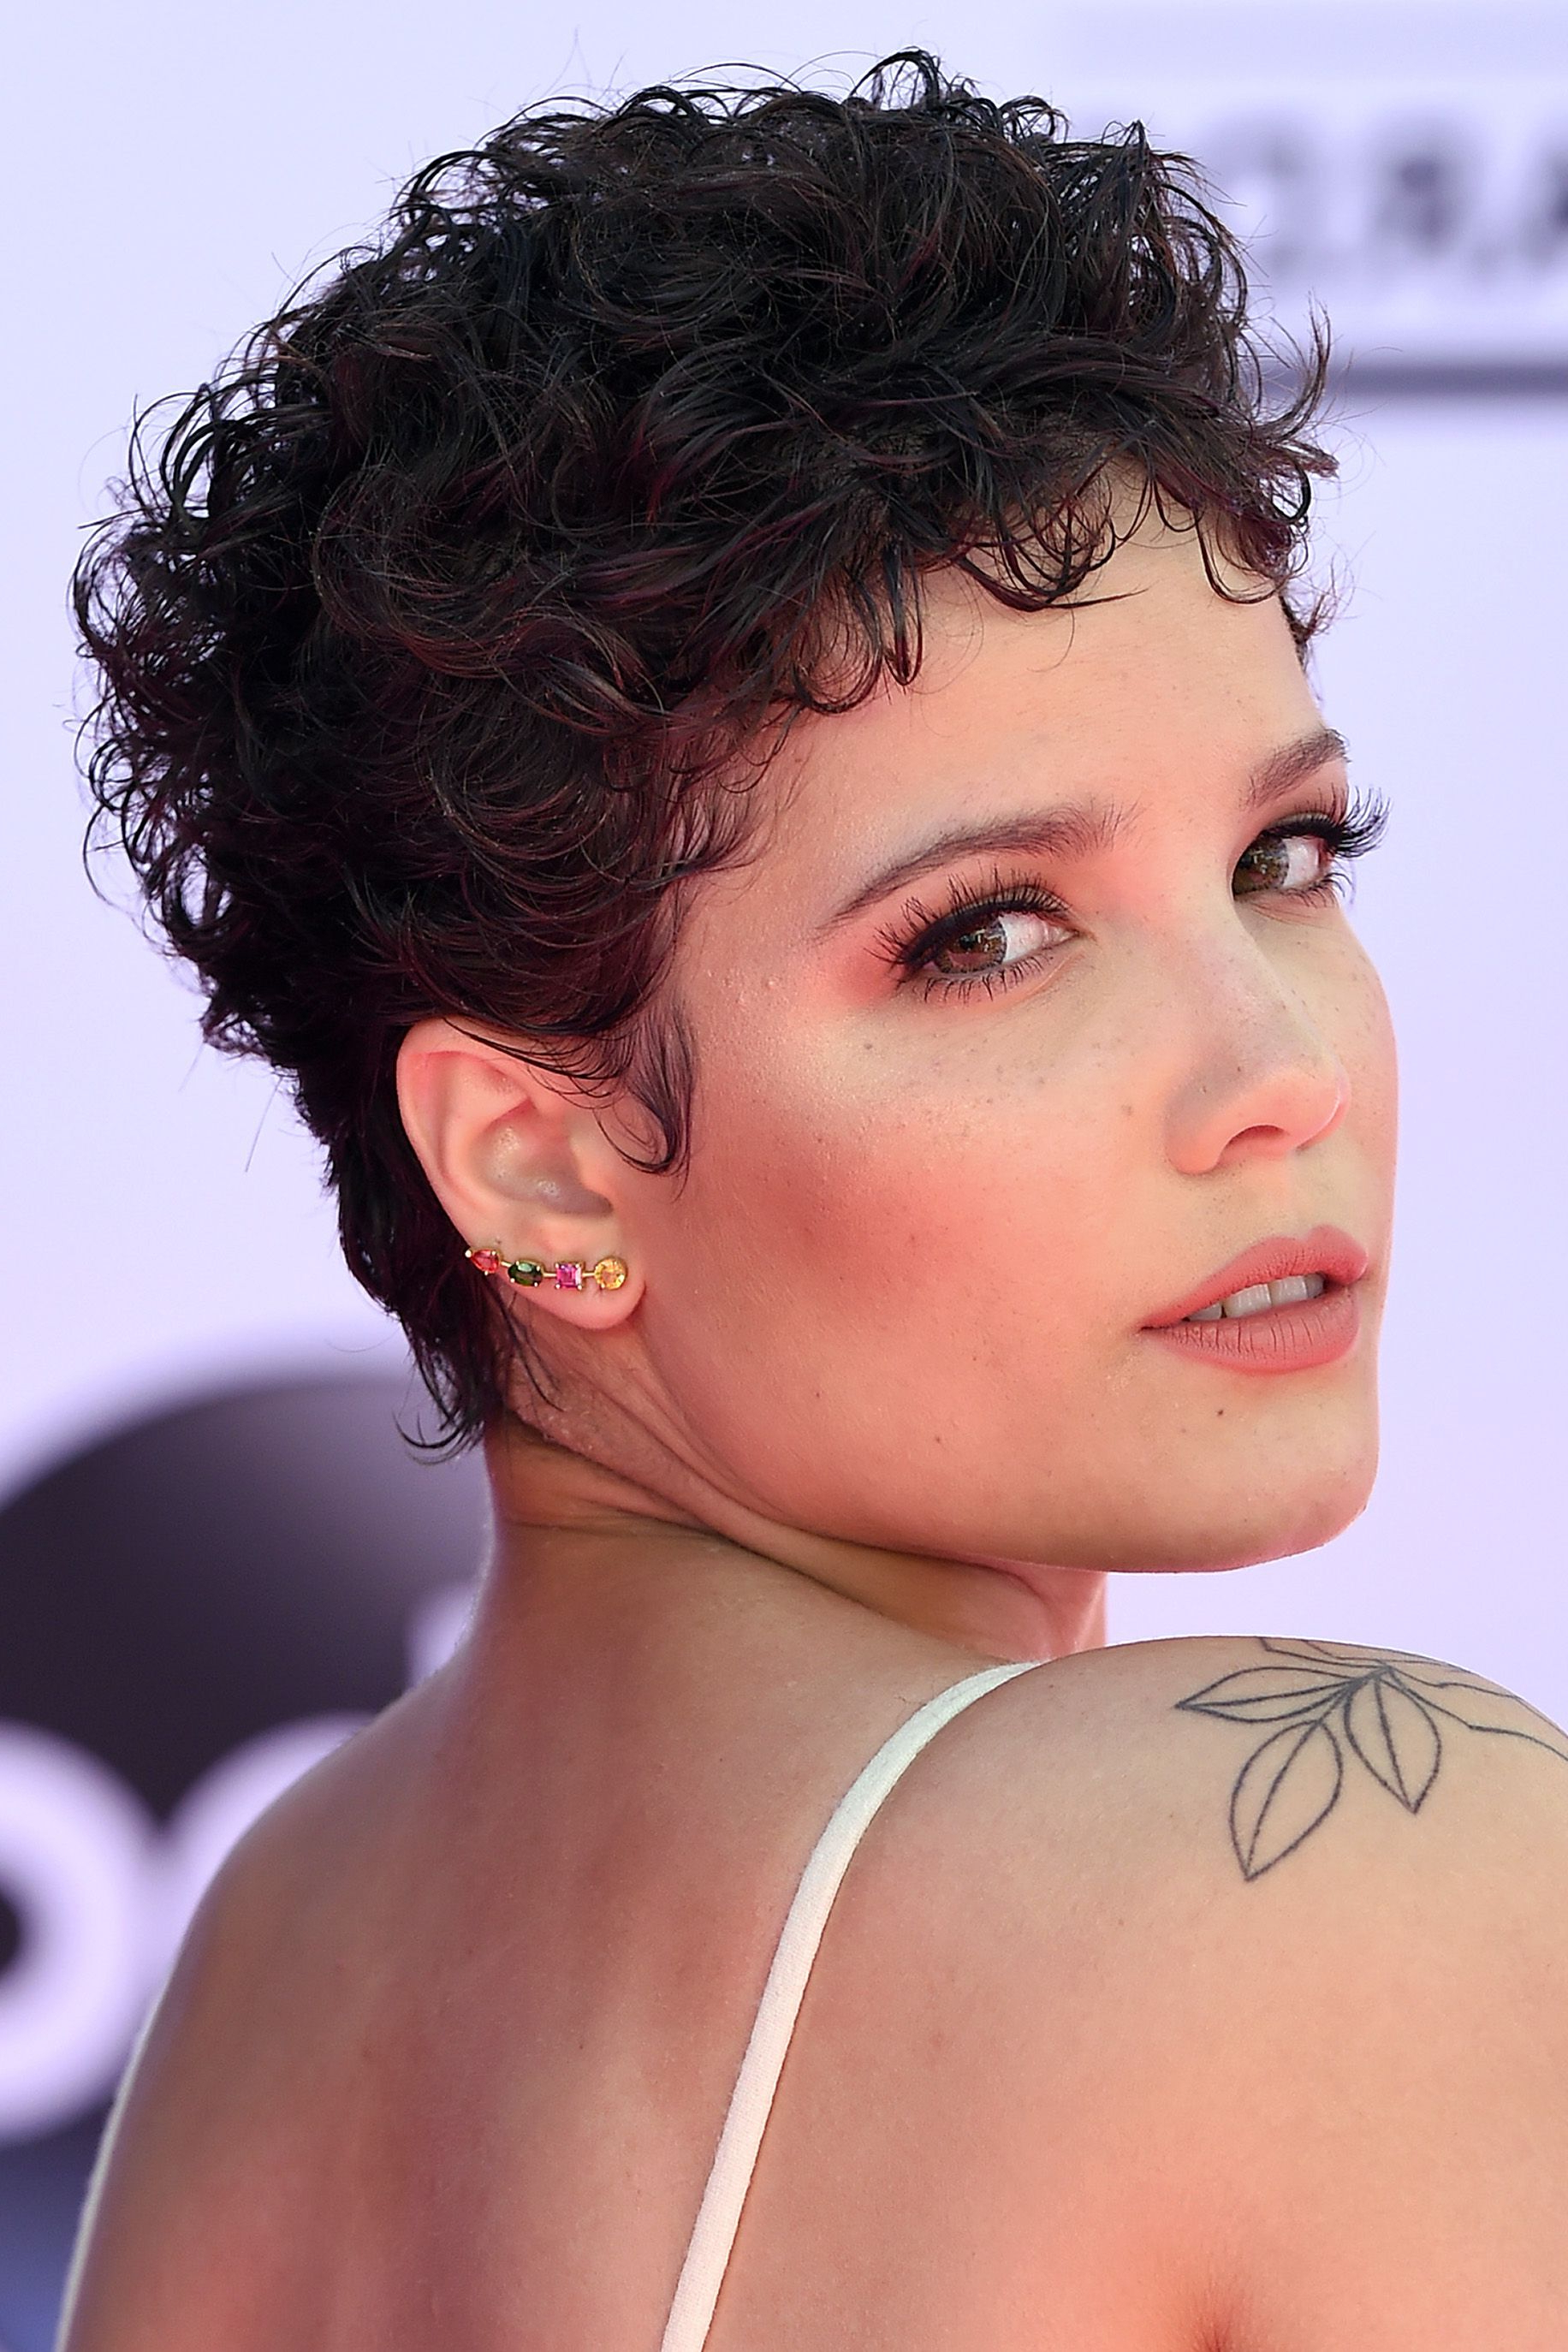 20 Best Short Curly Hairstyles 2019 – Cute Short Haircuts With Regard To Cute Curly Pixie Hairstyles (View 5 of 20)